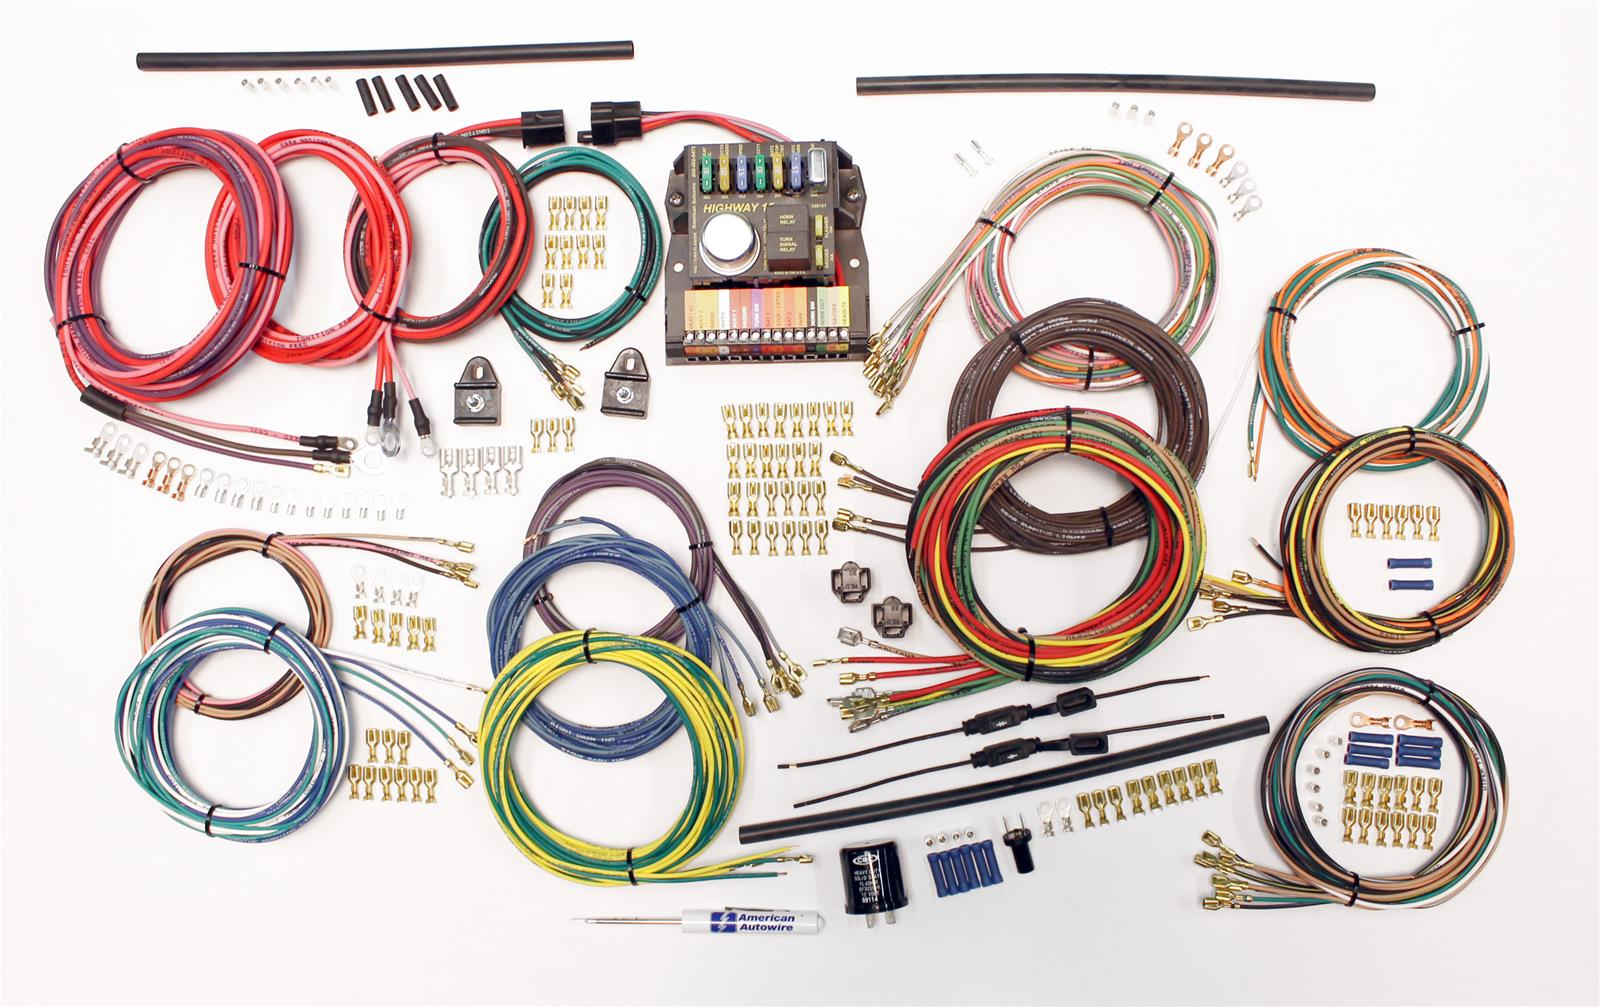 aww 510419_xl american autowire classic update series wiring harness kits 510419 1965 vw bus wiring harness at alyssarenee.co